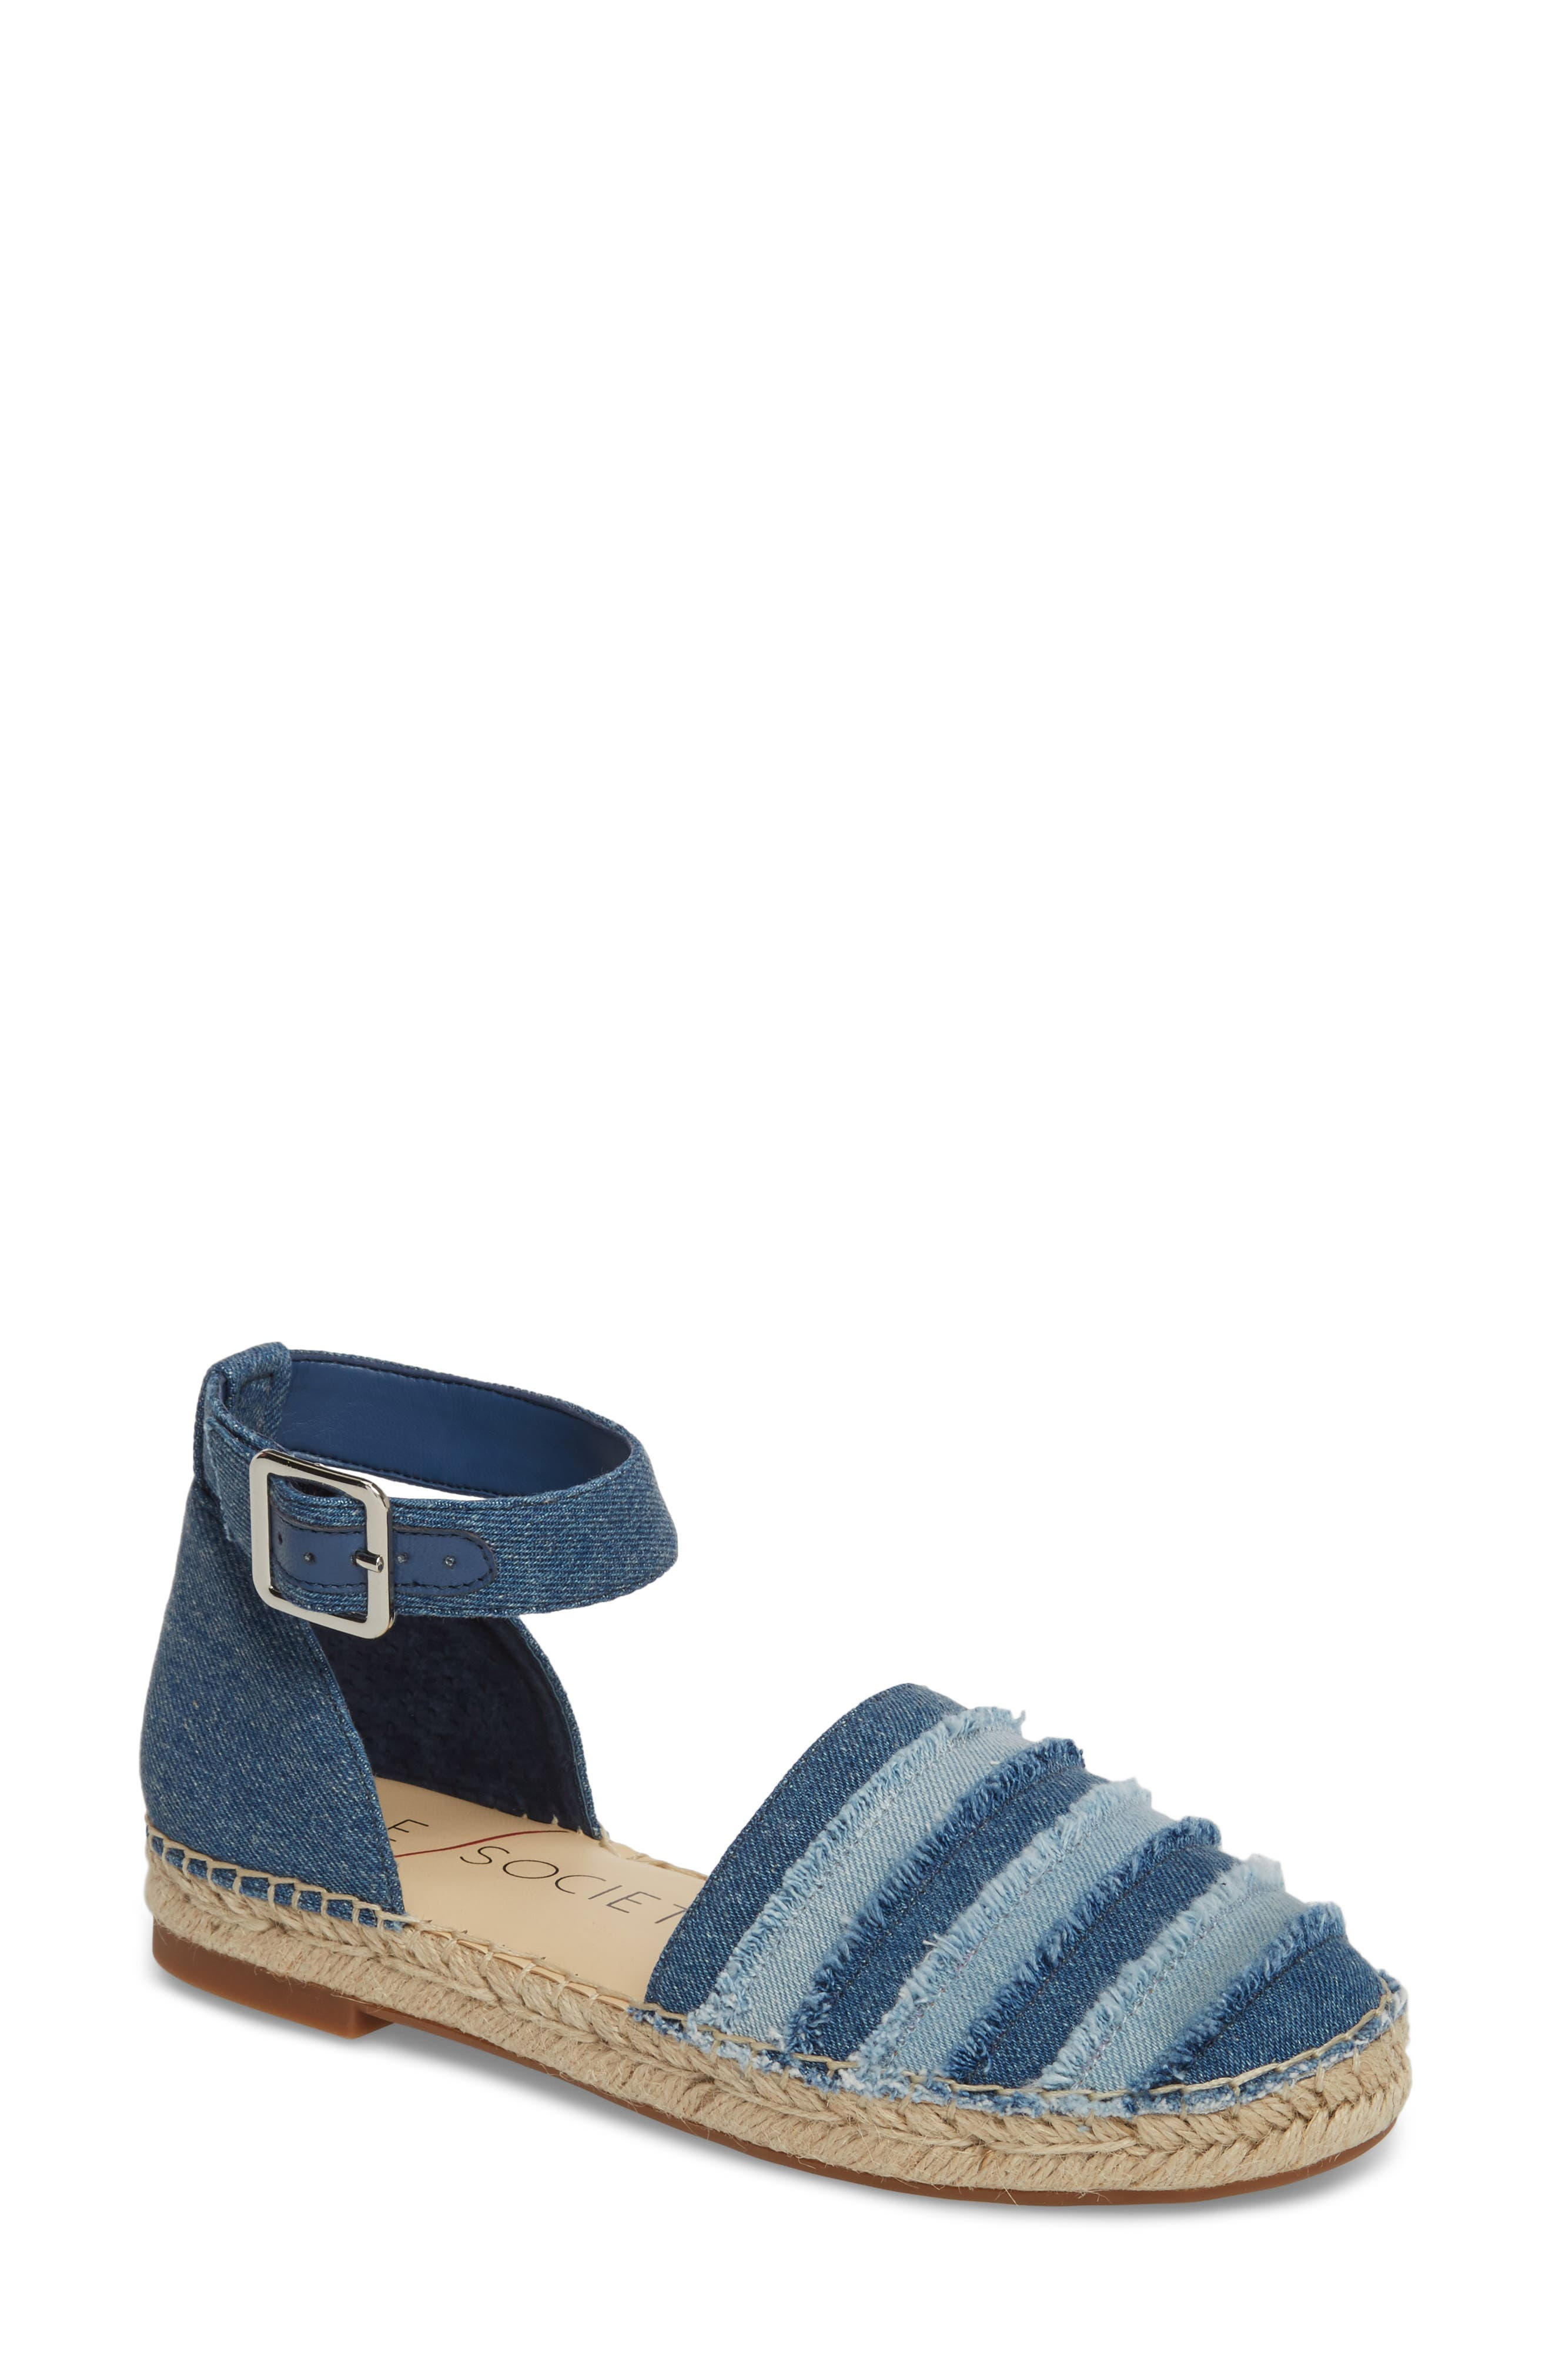 Sole Society Stacie Espadrille Sandal, Blue